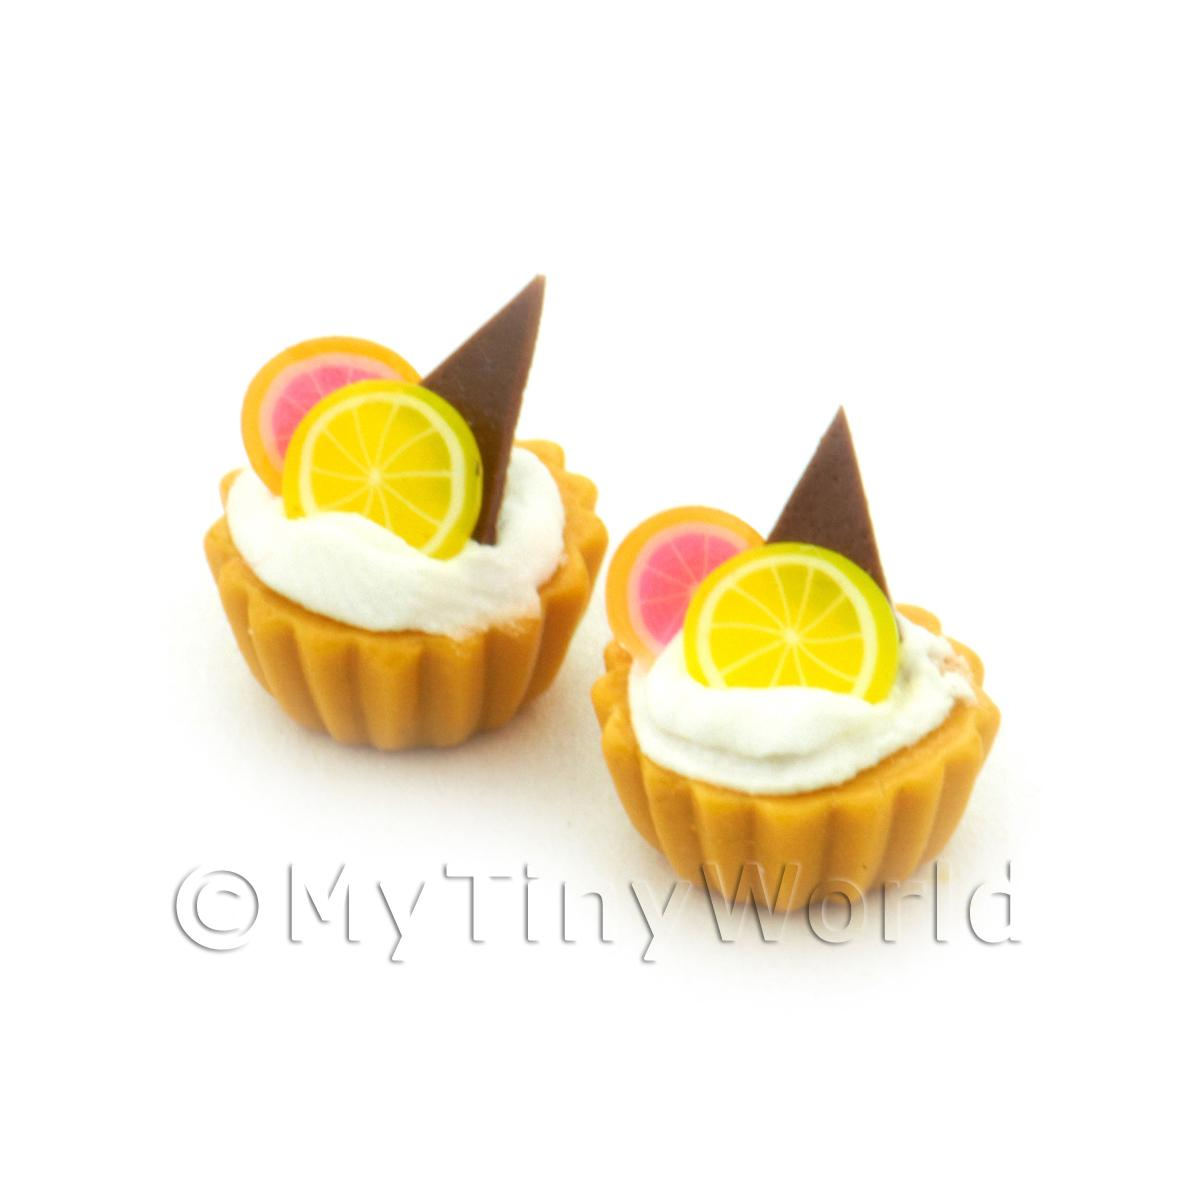 Dolls House Miniature Grapefruit, Lemon And Chocolate Tart